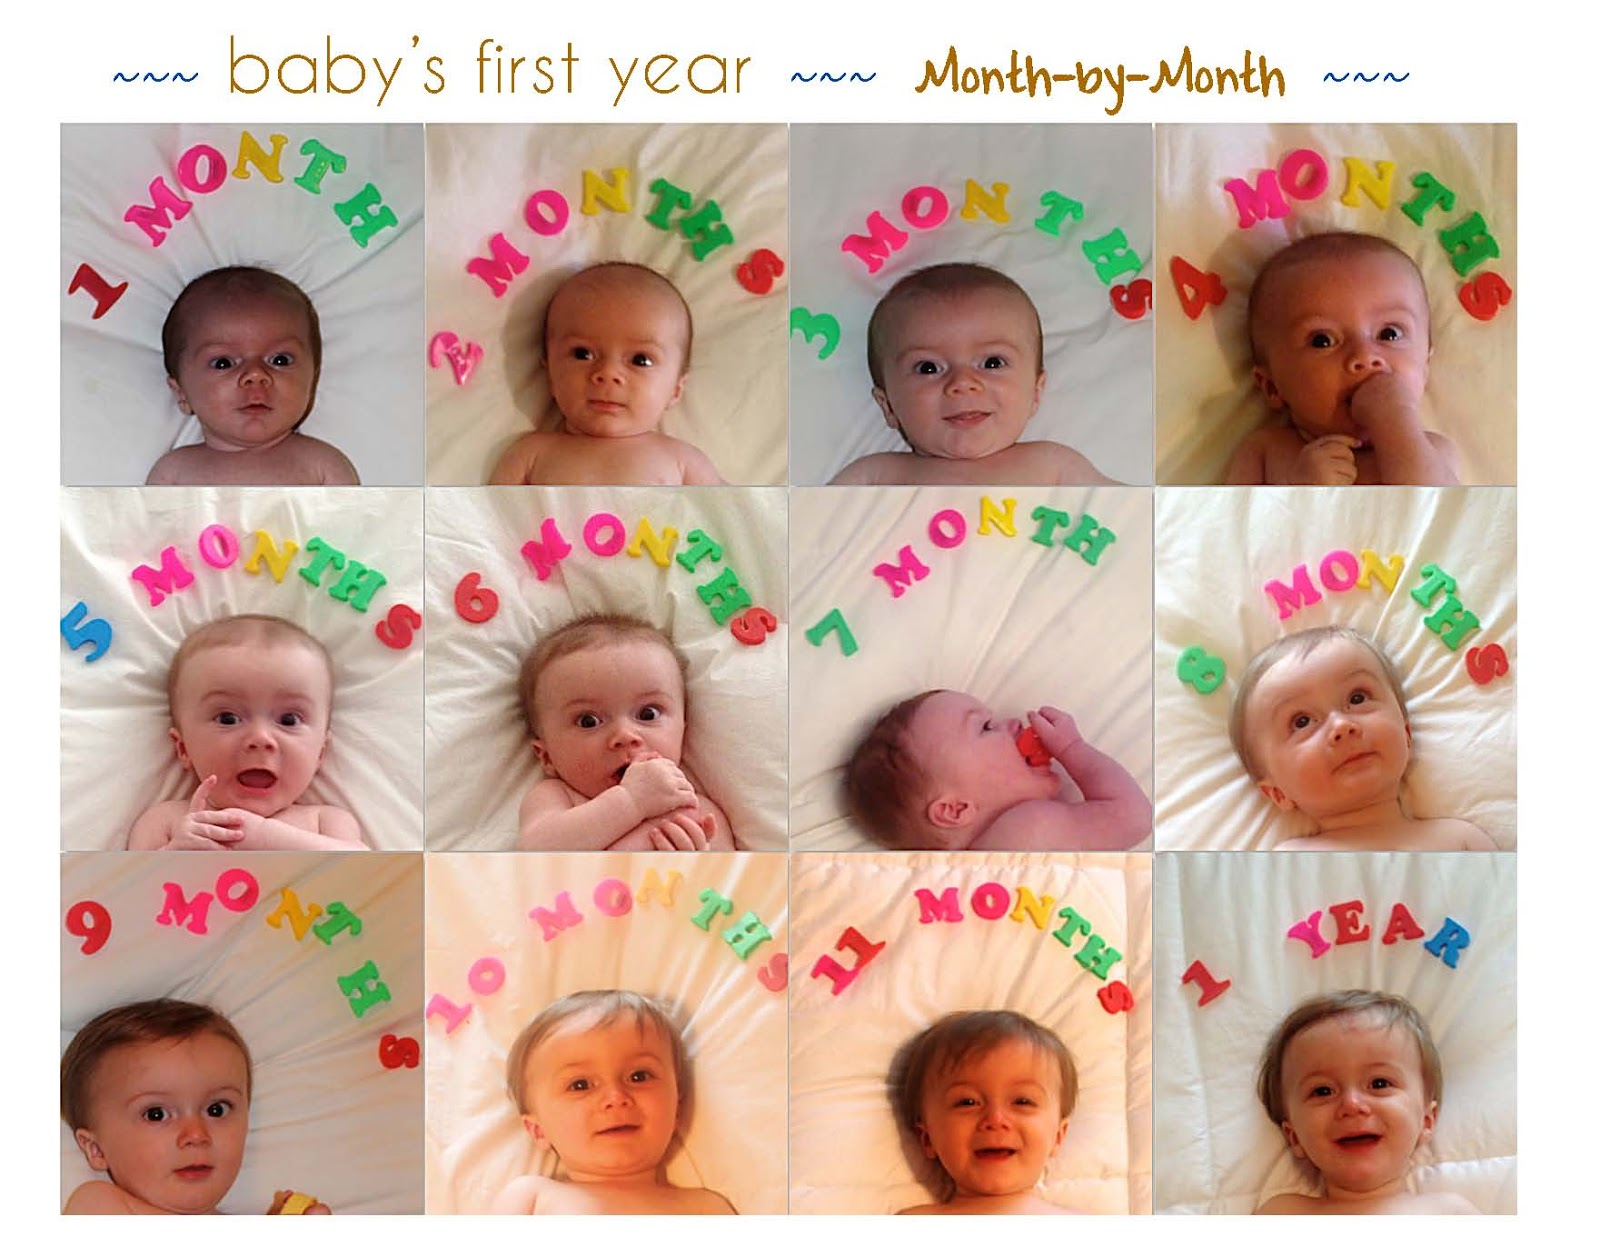 joie de vivre.: Baby's first year: Monthly photo collage